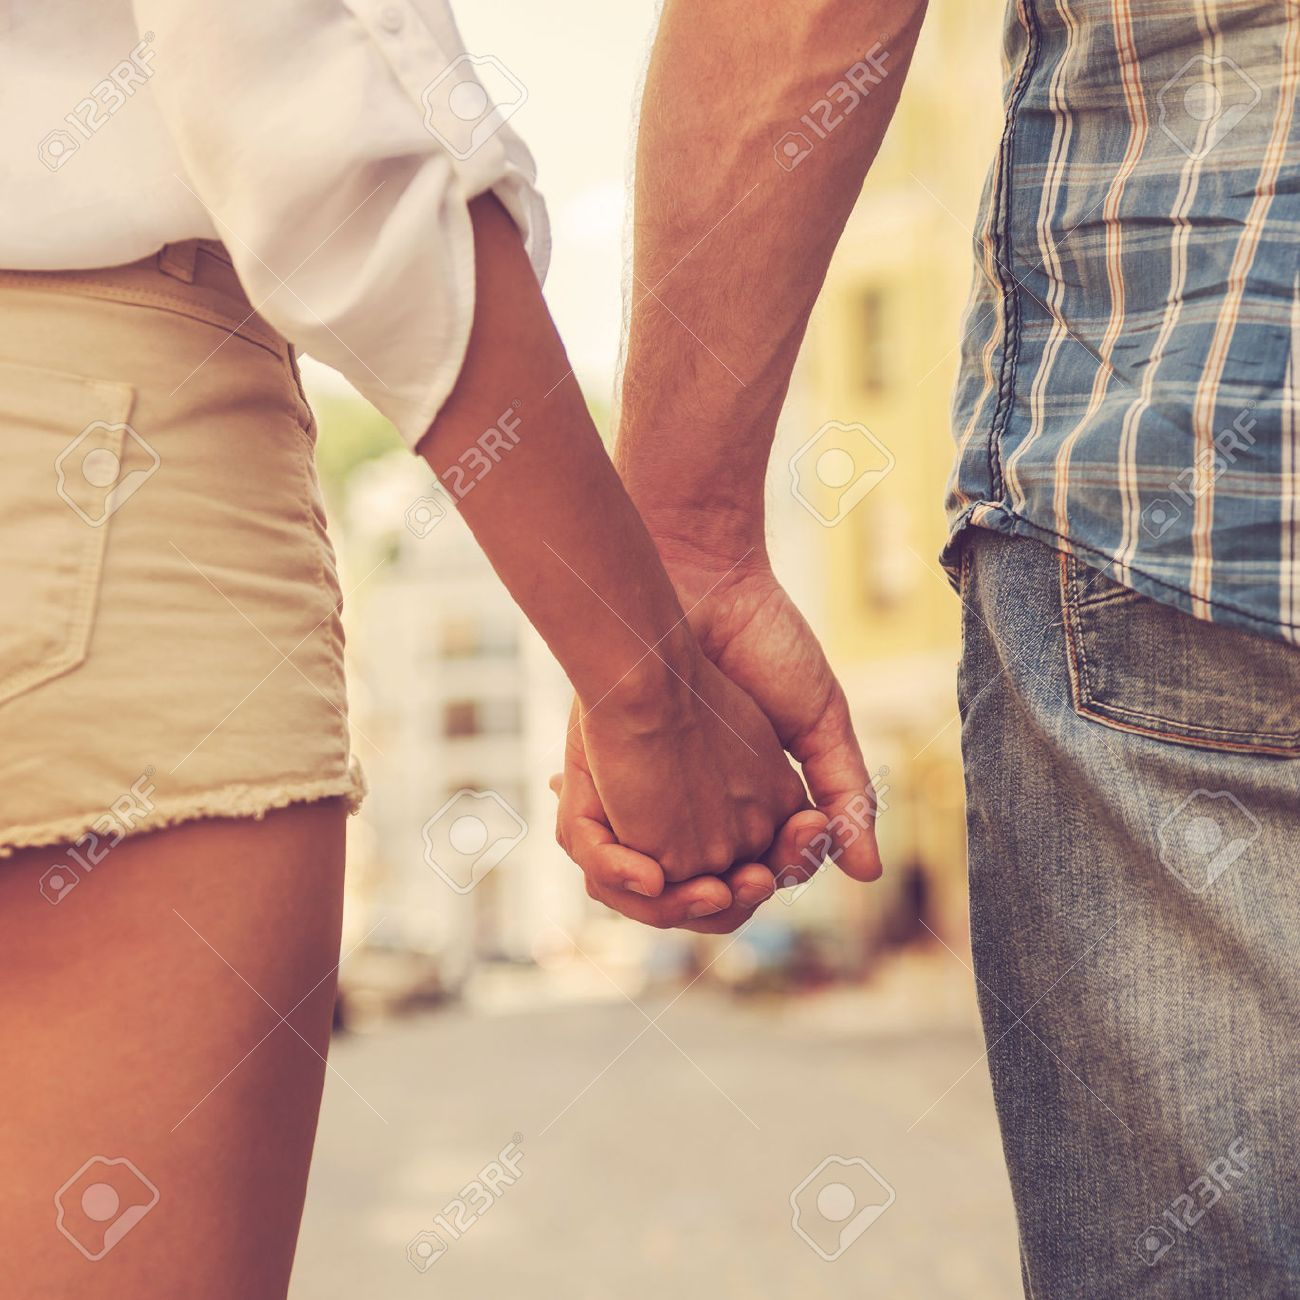 Hands and hearts together. Close-up of loving couple holding hands while walking outdoors Stock Photo - 51259721